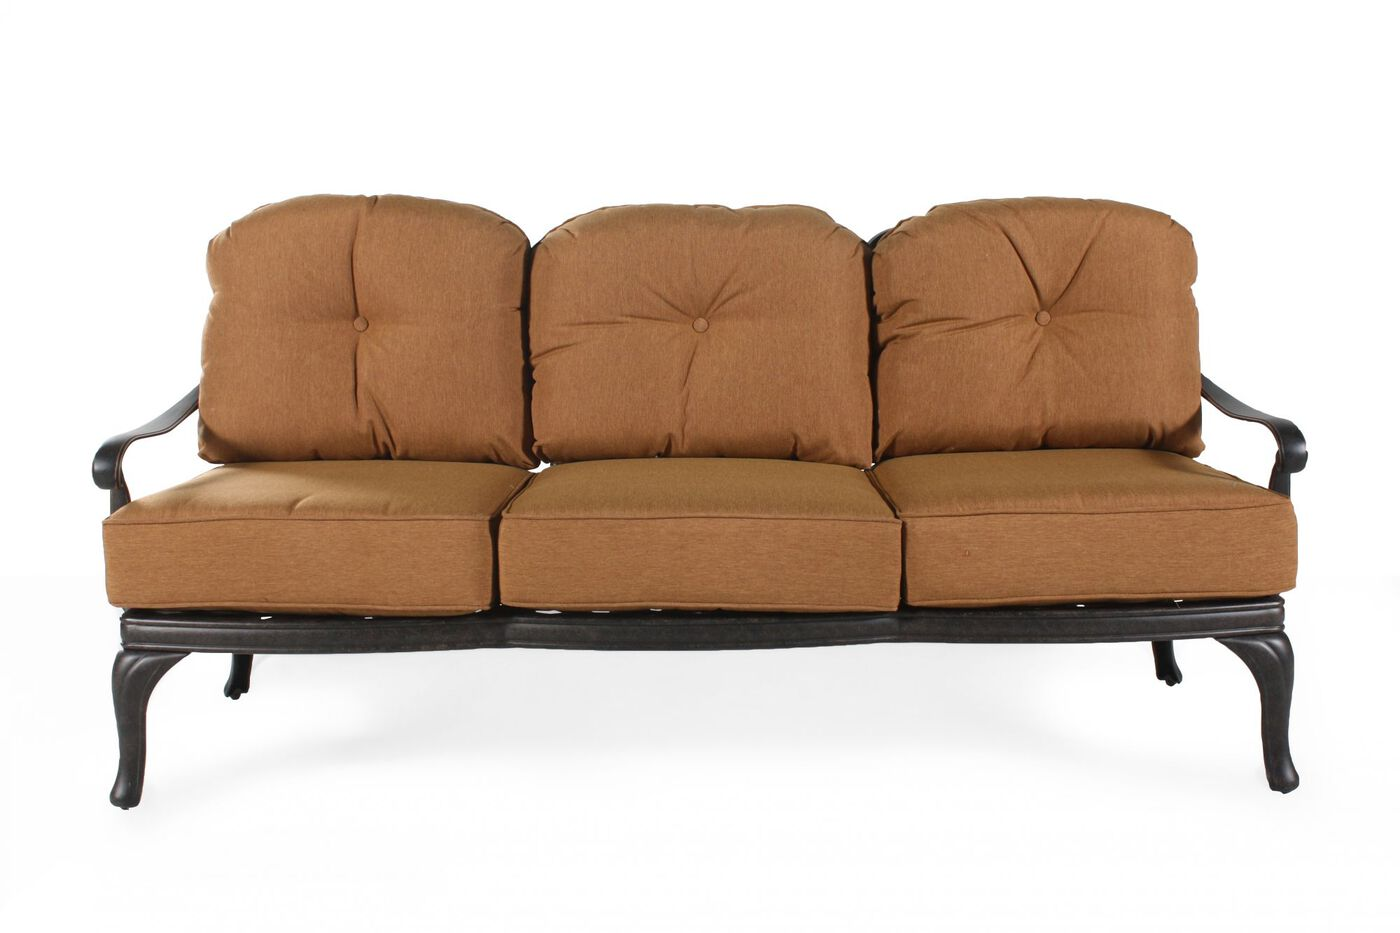 World source sonoma sofa mathis brothers furniture for Furniture 888